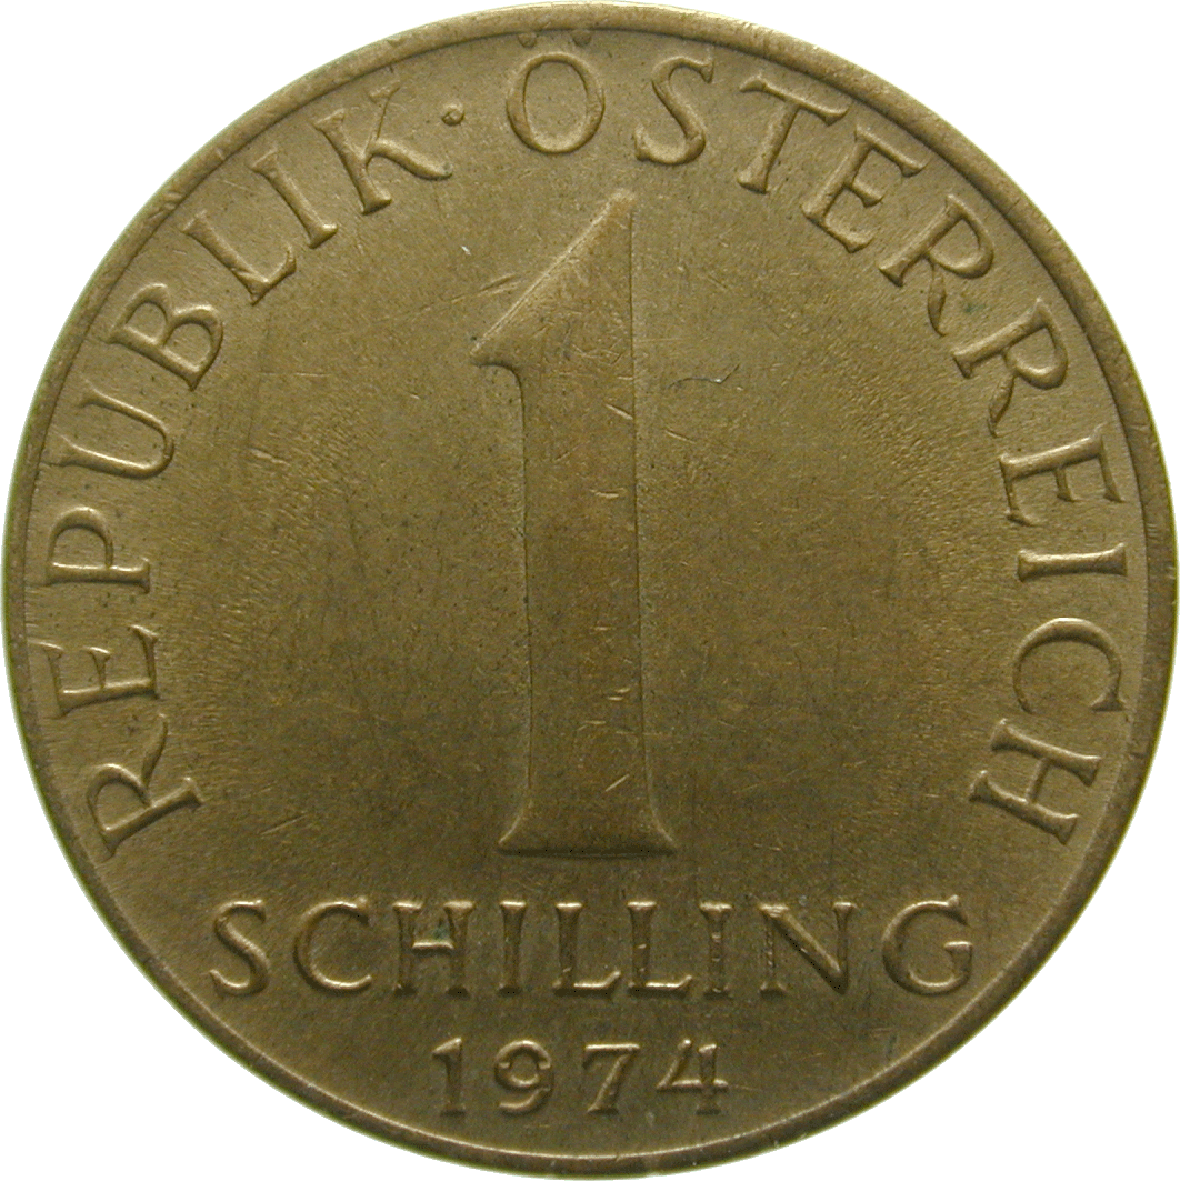 Republic of Austria, 1 Schilling 1974 (obverse)